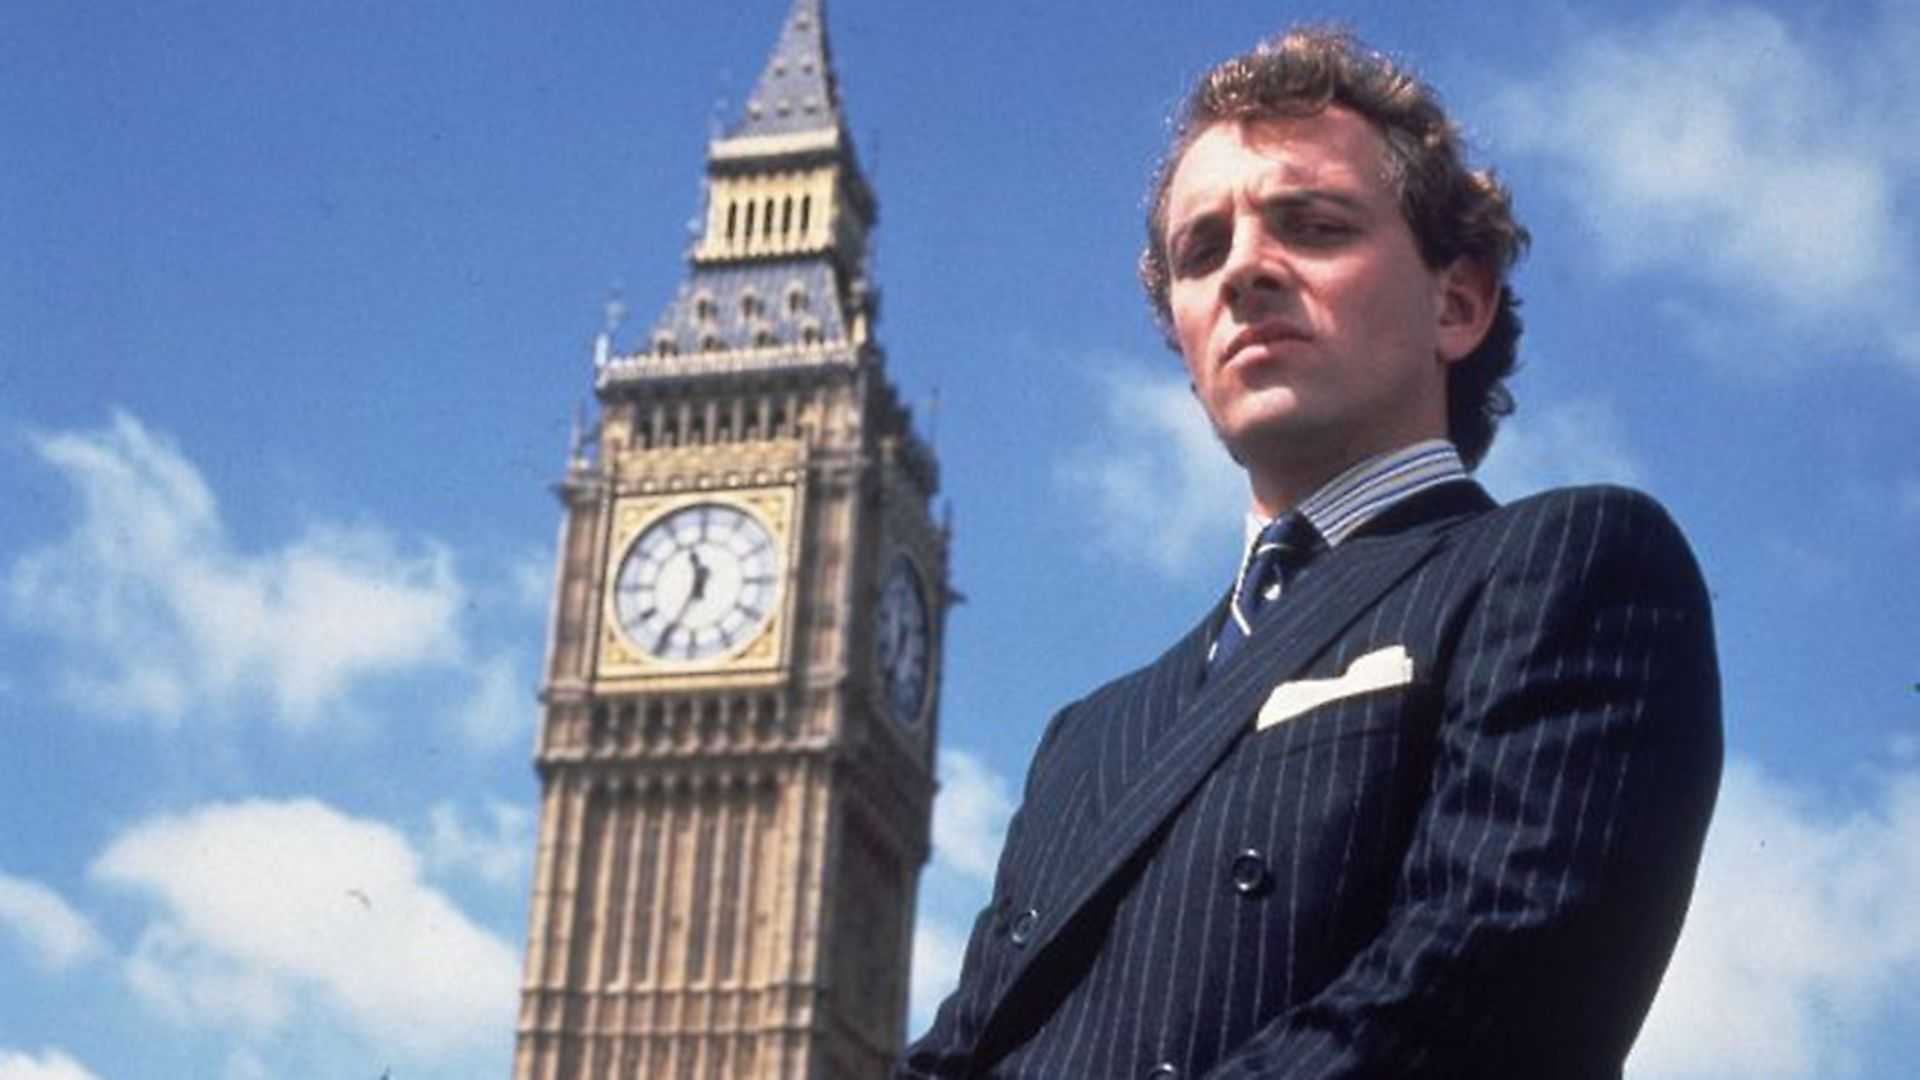 A MAN FOR OUR TIMES: Rik Mayall in his strangely prescient role as Conservative MP Alan BstardPhoto: Contributed - Credit: Archant